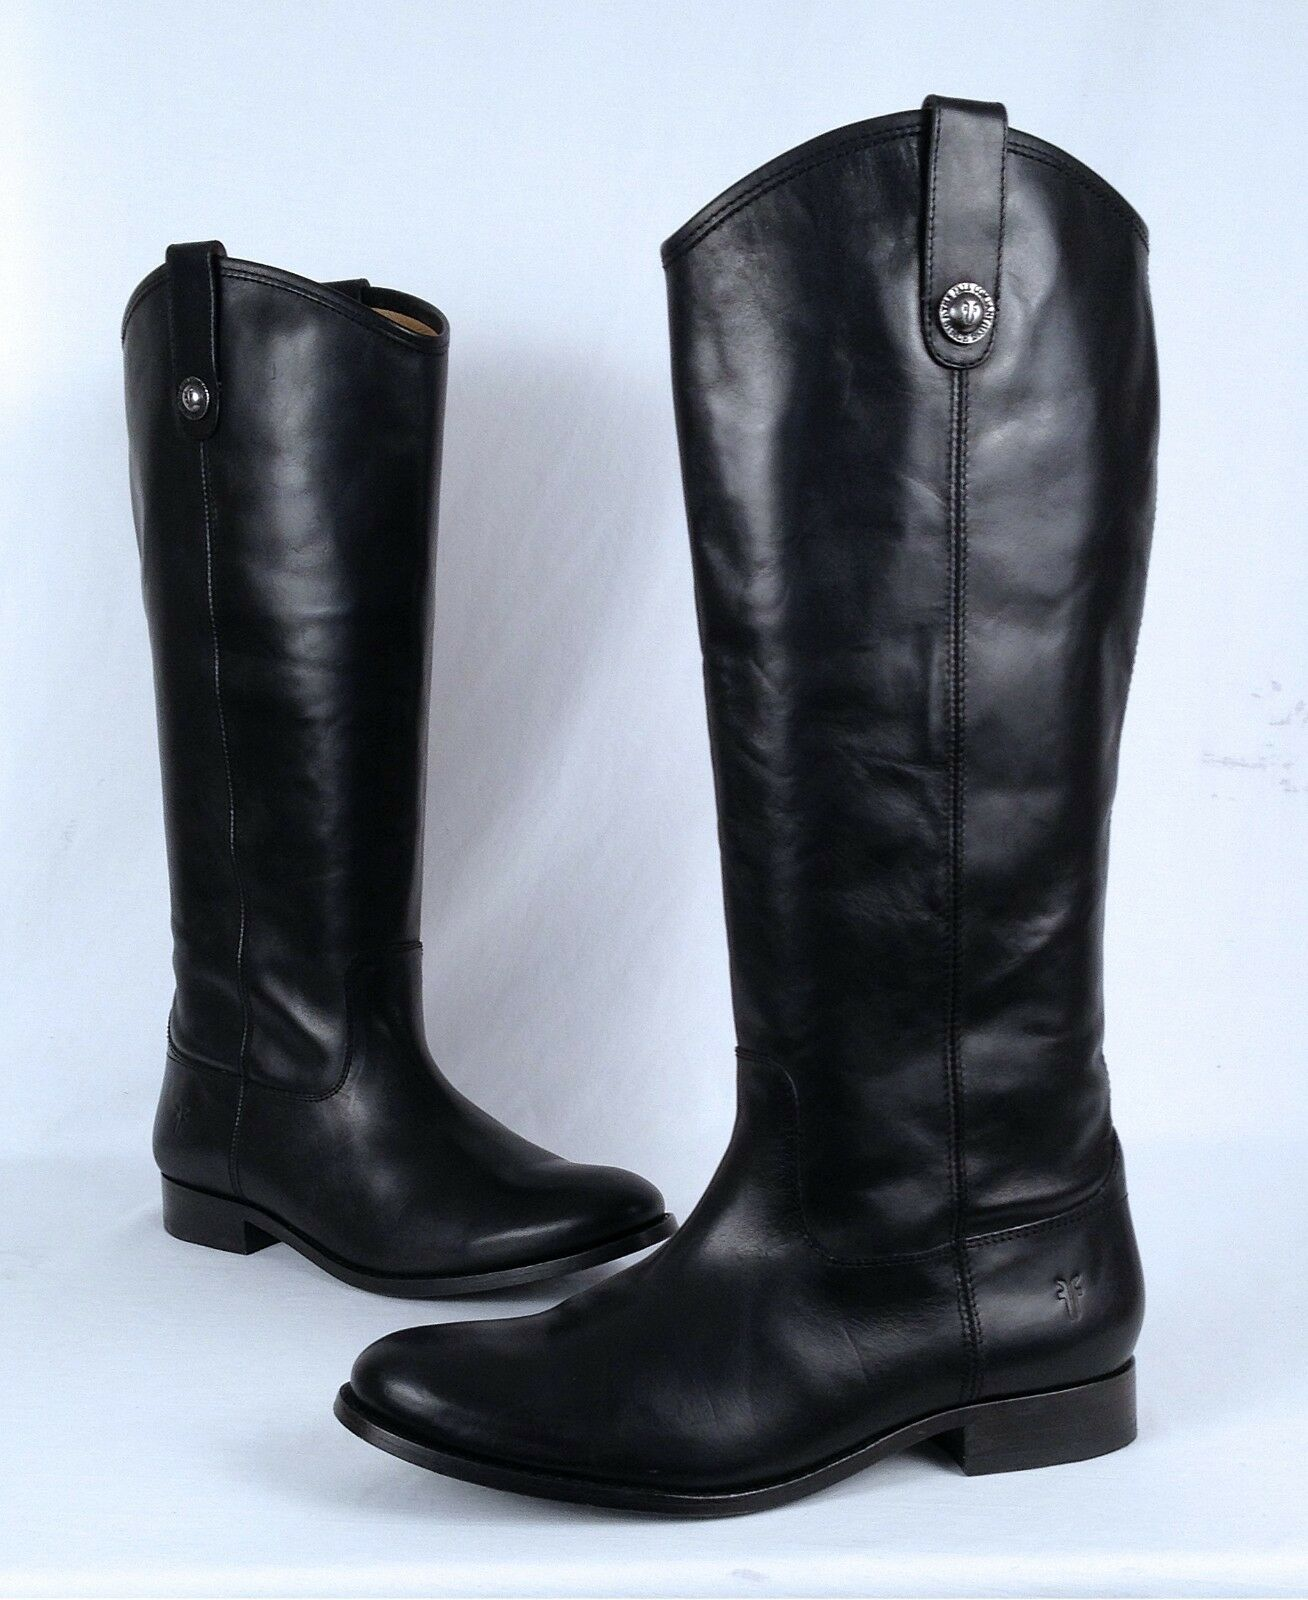 NEW!! Frye 'Melissa' Button Boot- Black Calf- Size 9.5 B   (B28)